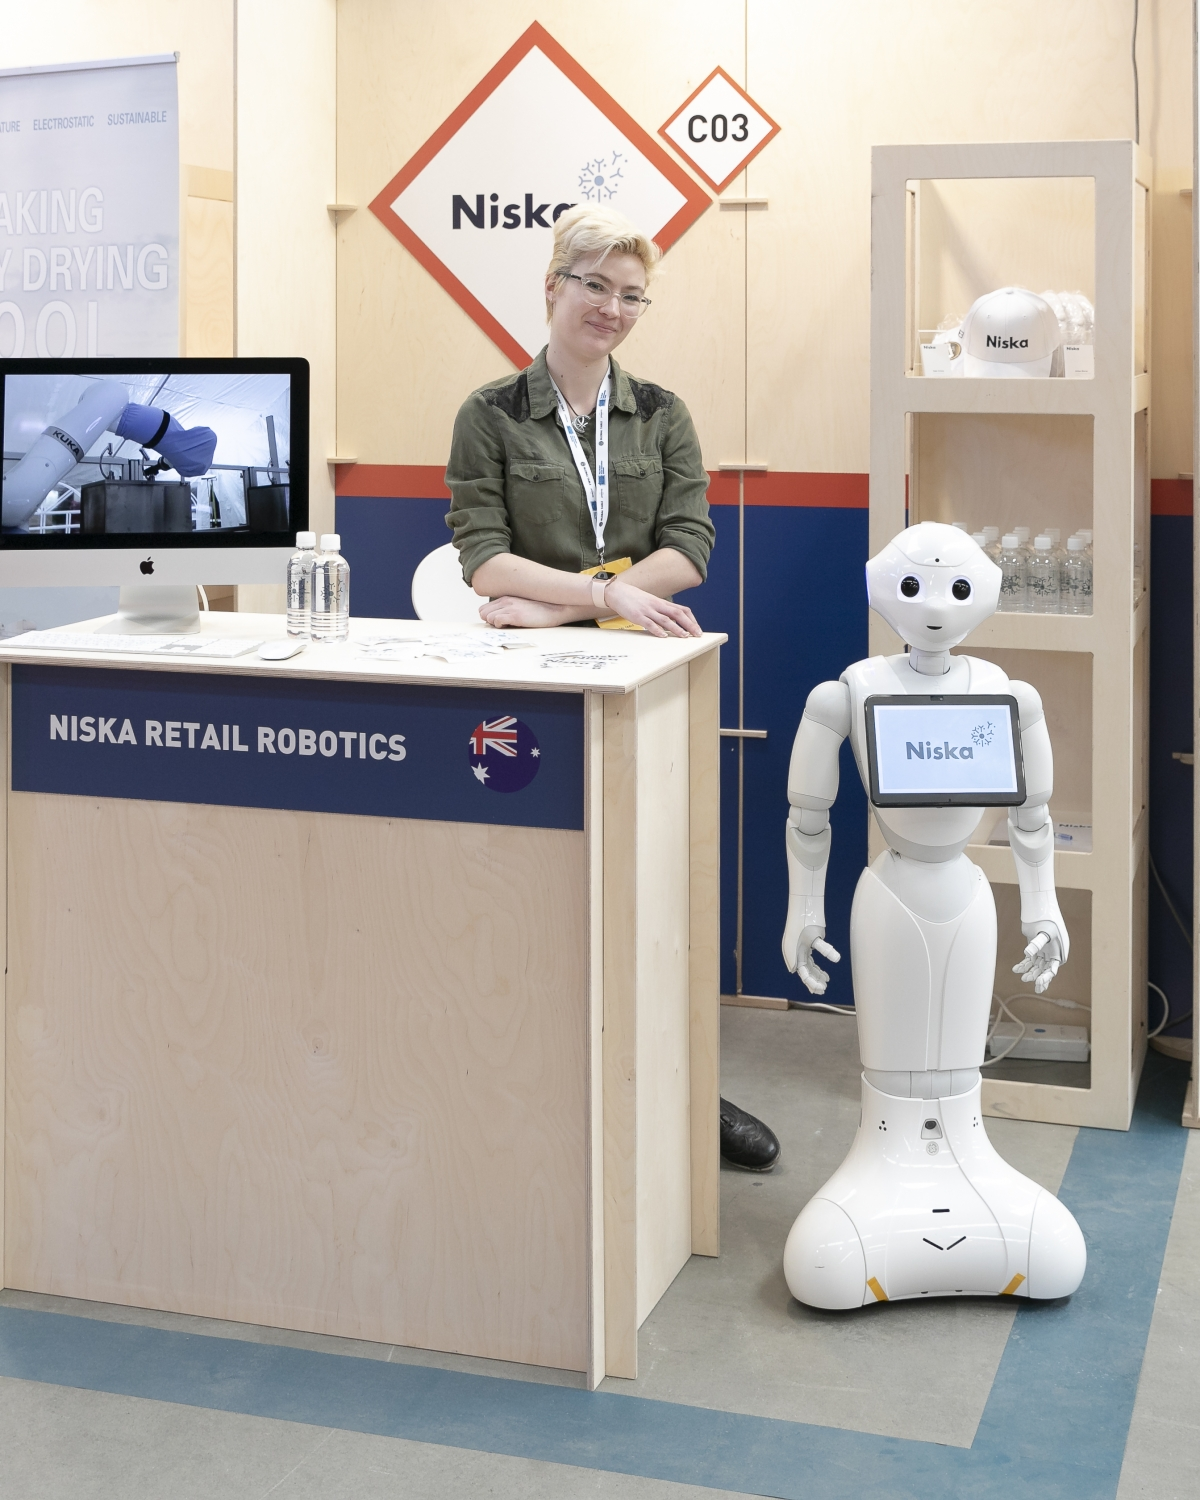 Niska Retail Robotics vendor in the Innovation Expo